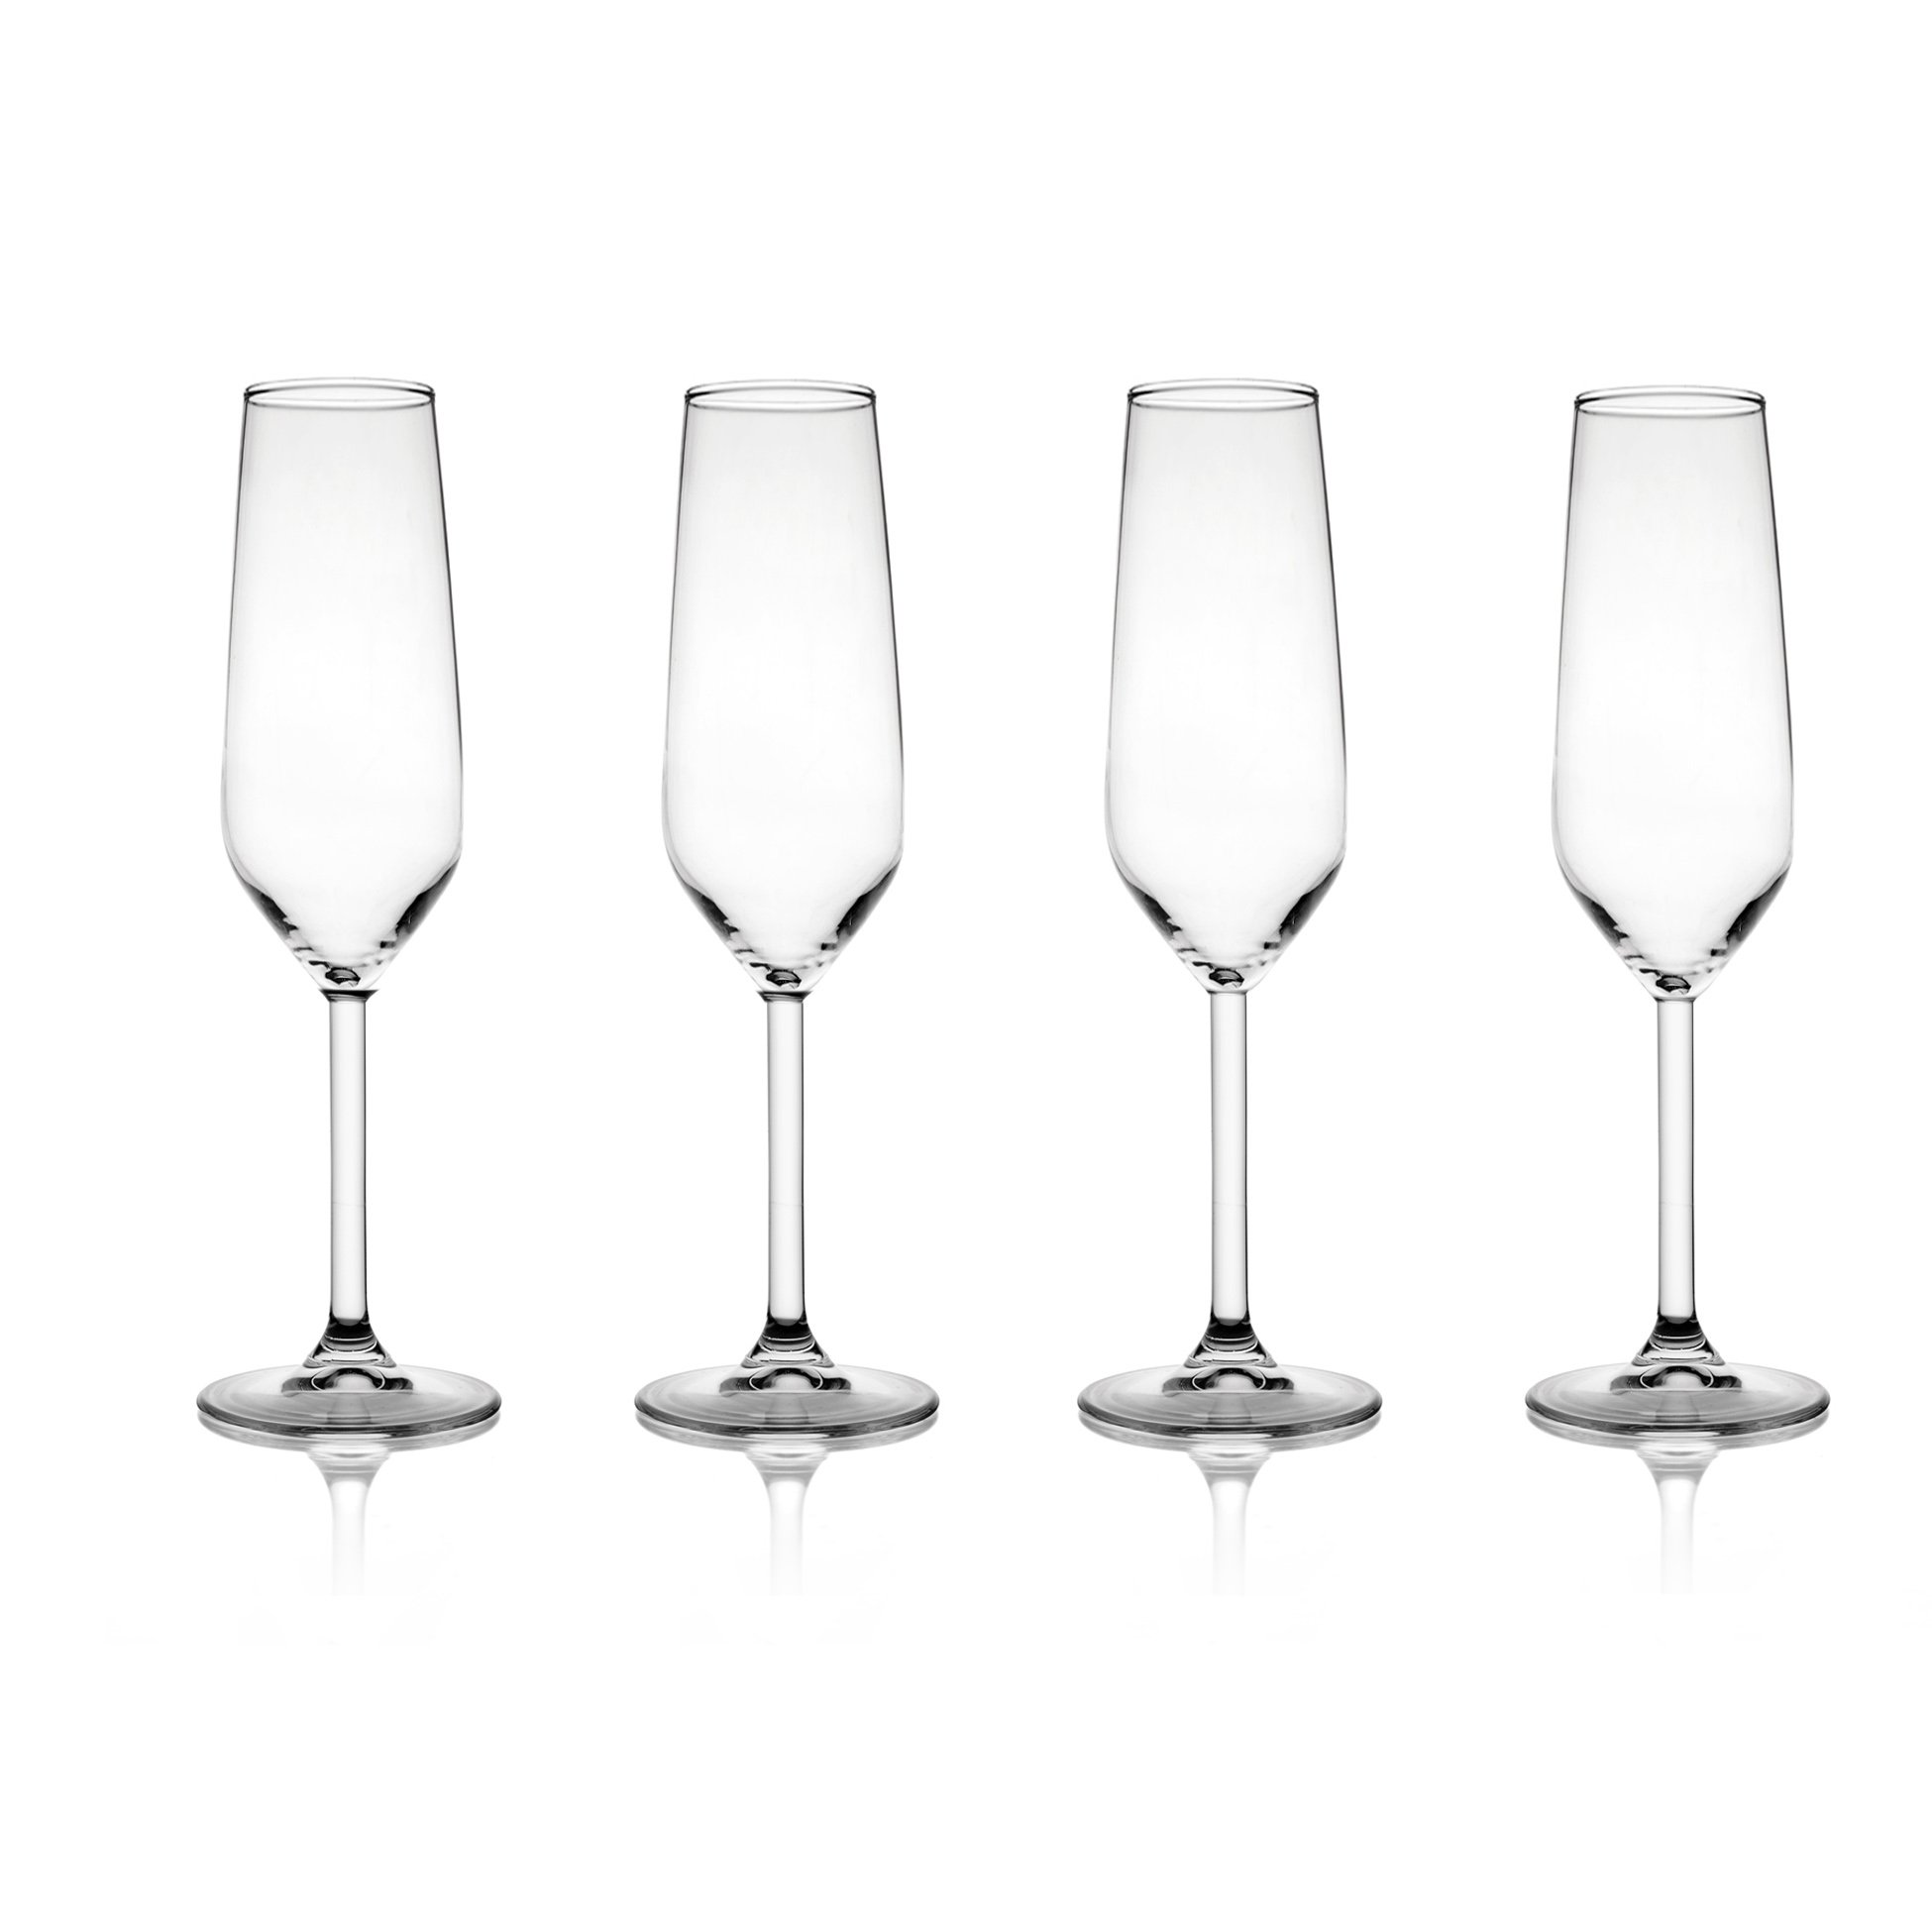 Fitz and Floyd 229319-4CHFF Chateau 6.4 Ounce Champagne Flute Glasses-Set of 4, 2x2x8, Clear